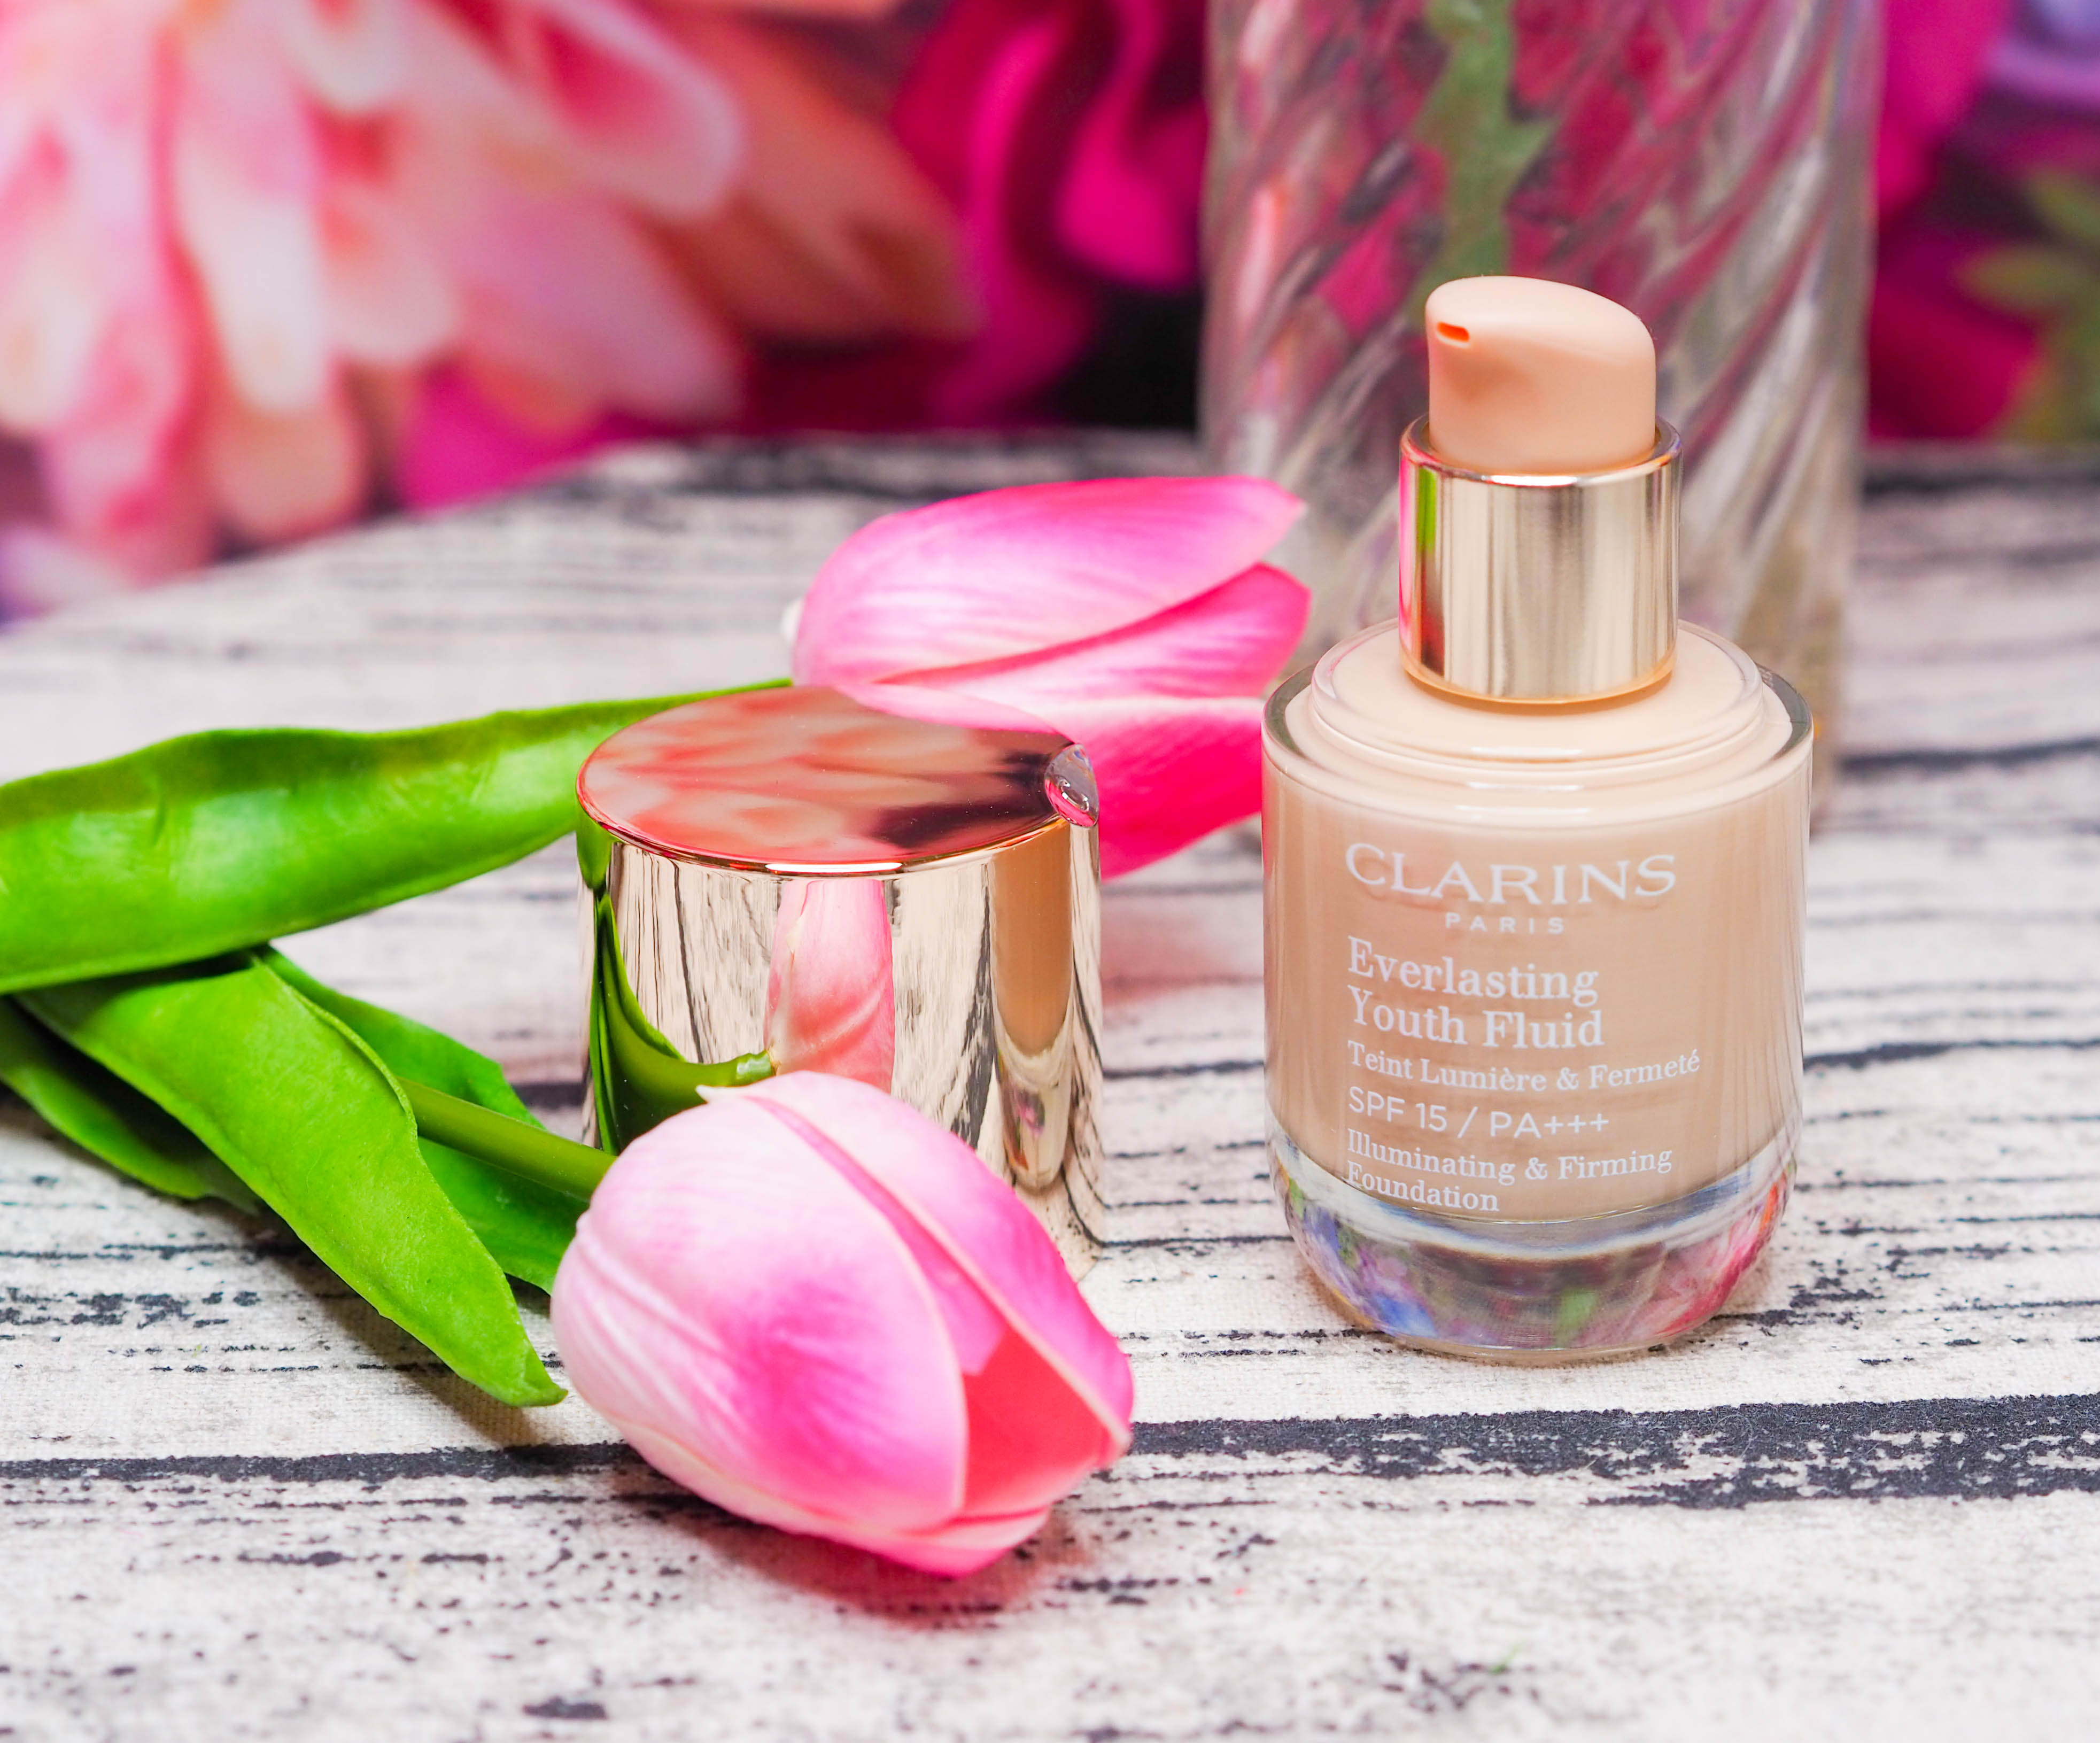 Clarins Everlasting Youth Fluid Foundation Review